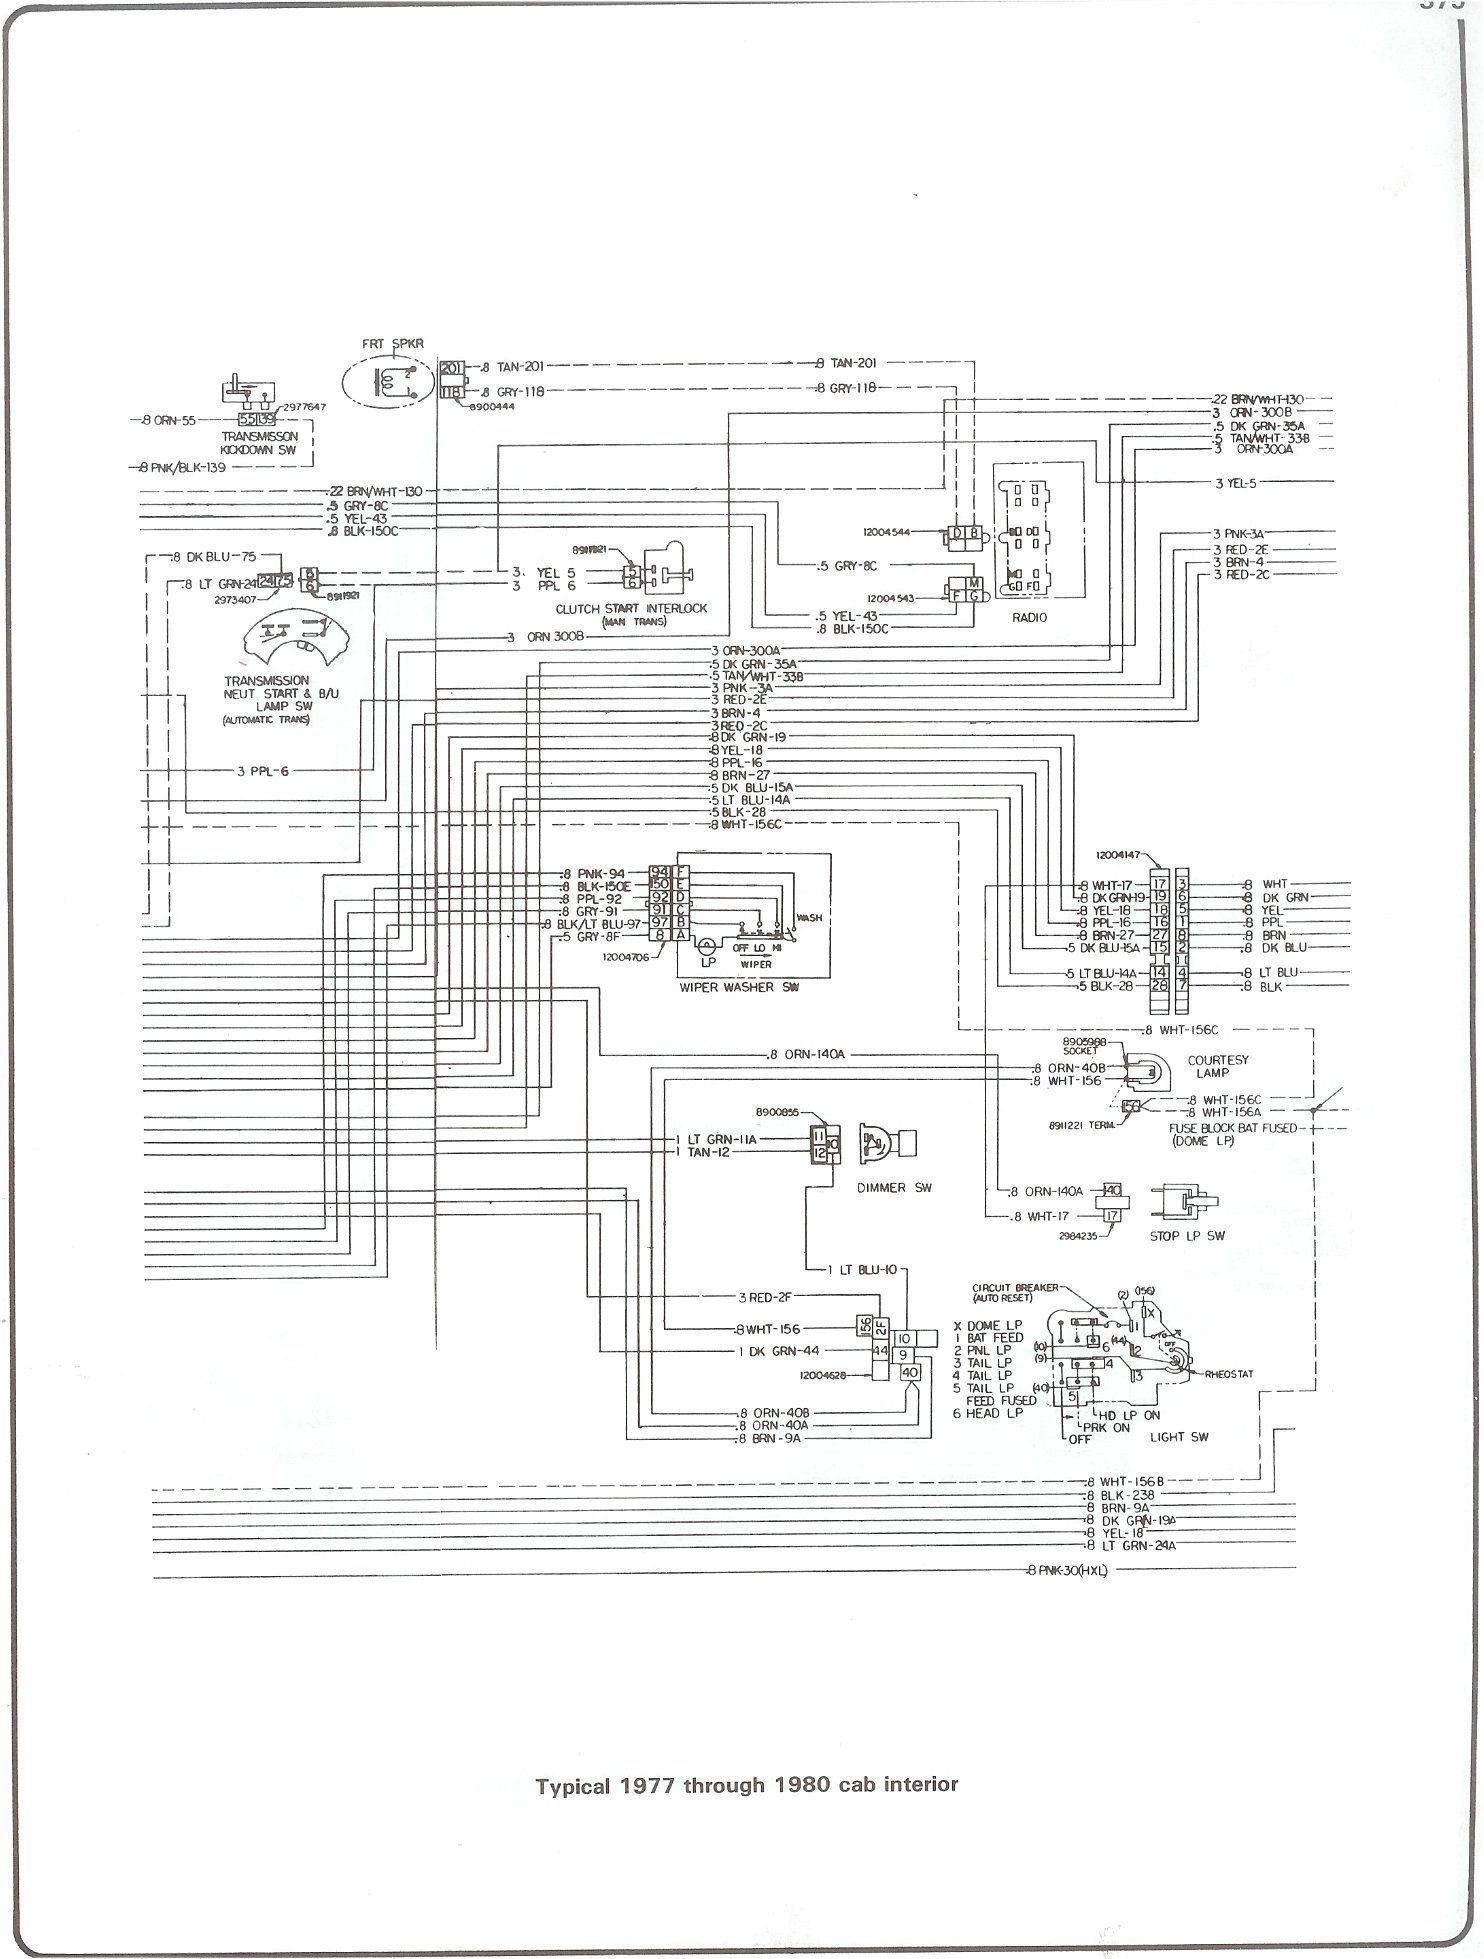 77 80_cab_inter complete 73 87 wiring diagrams 1984 El Camino Wiring-Diagram at fashall.co